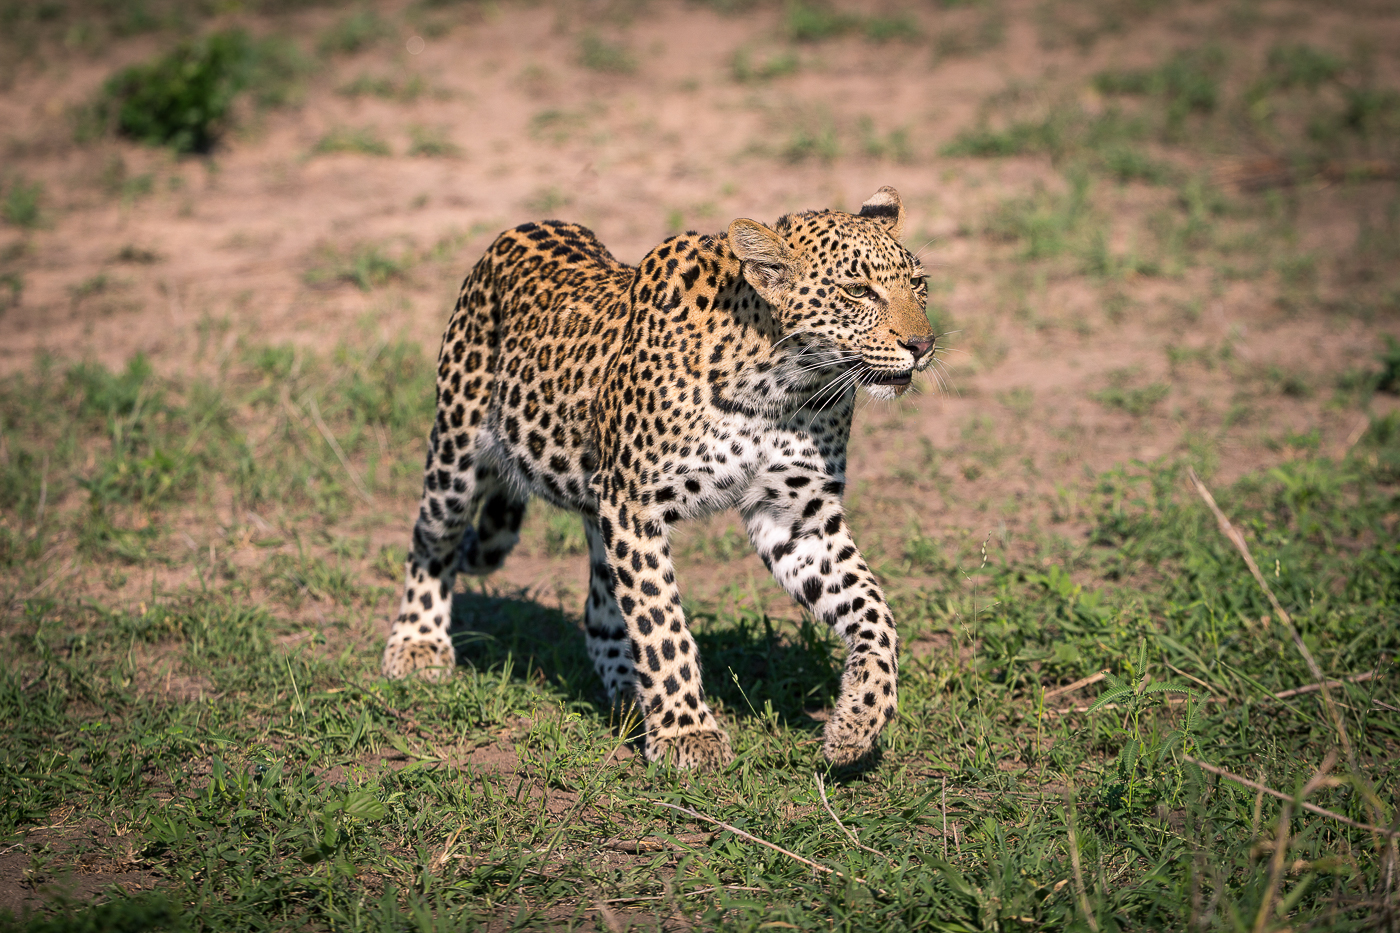 The Mashaba youngster leopard